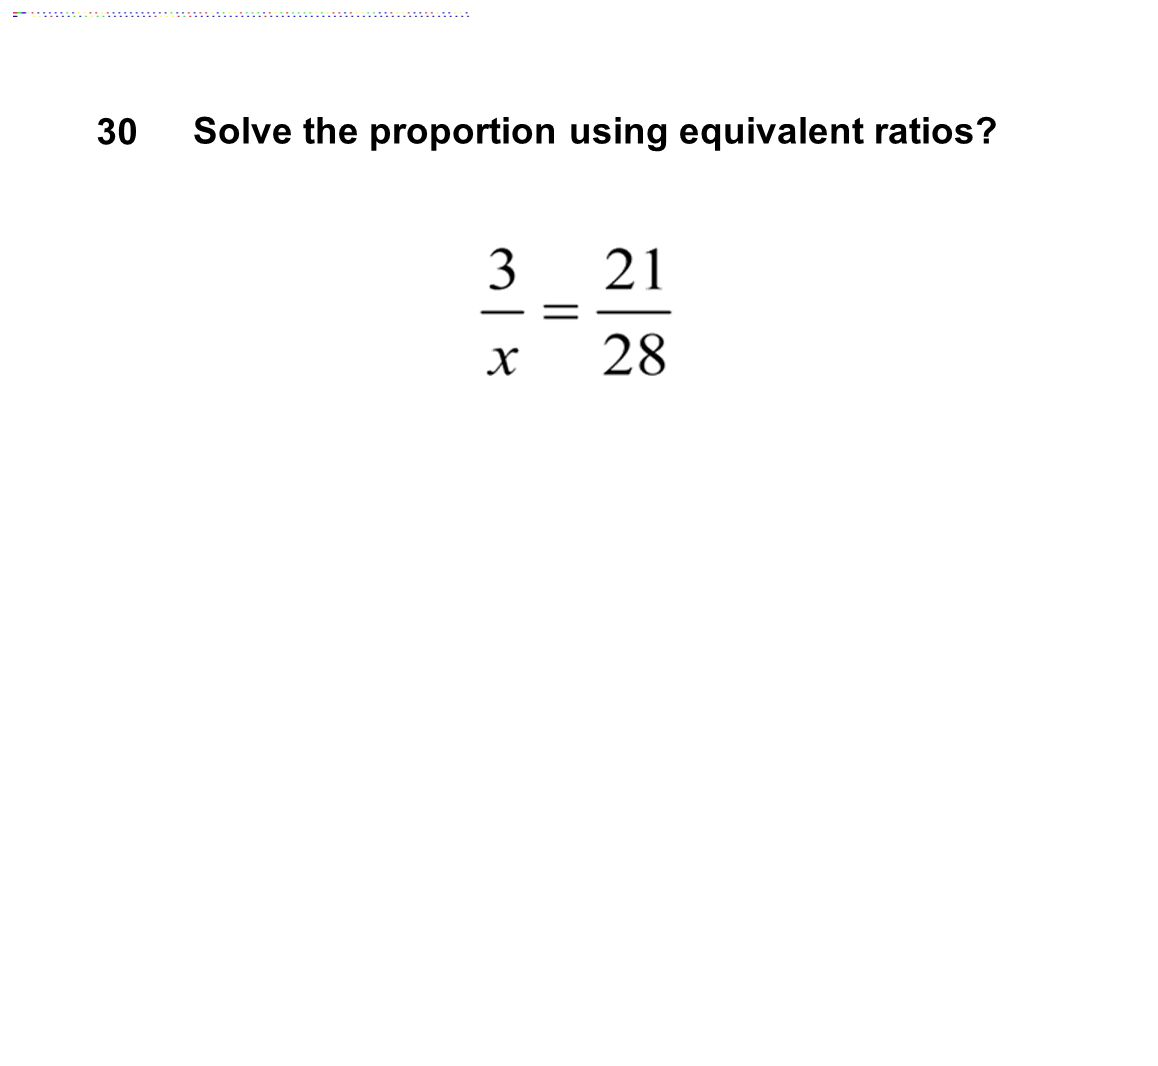 Solve the proportion using equivalent ratios